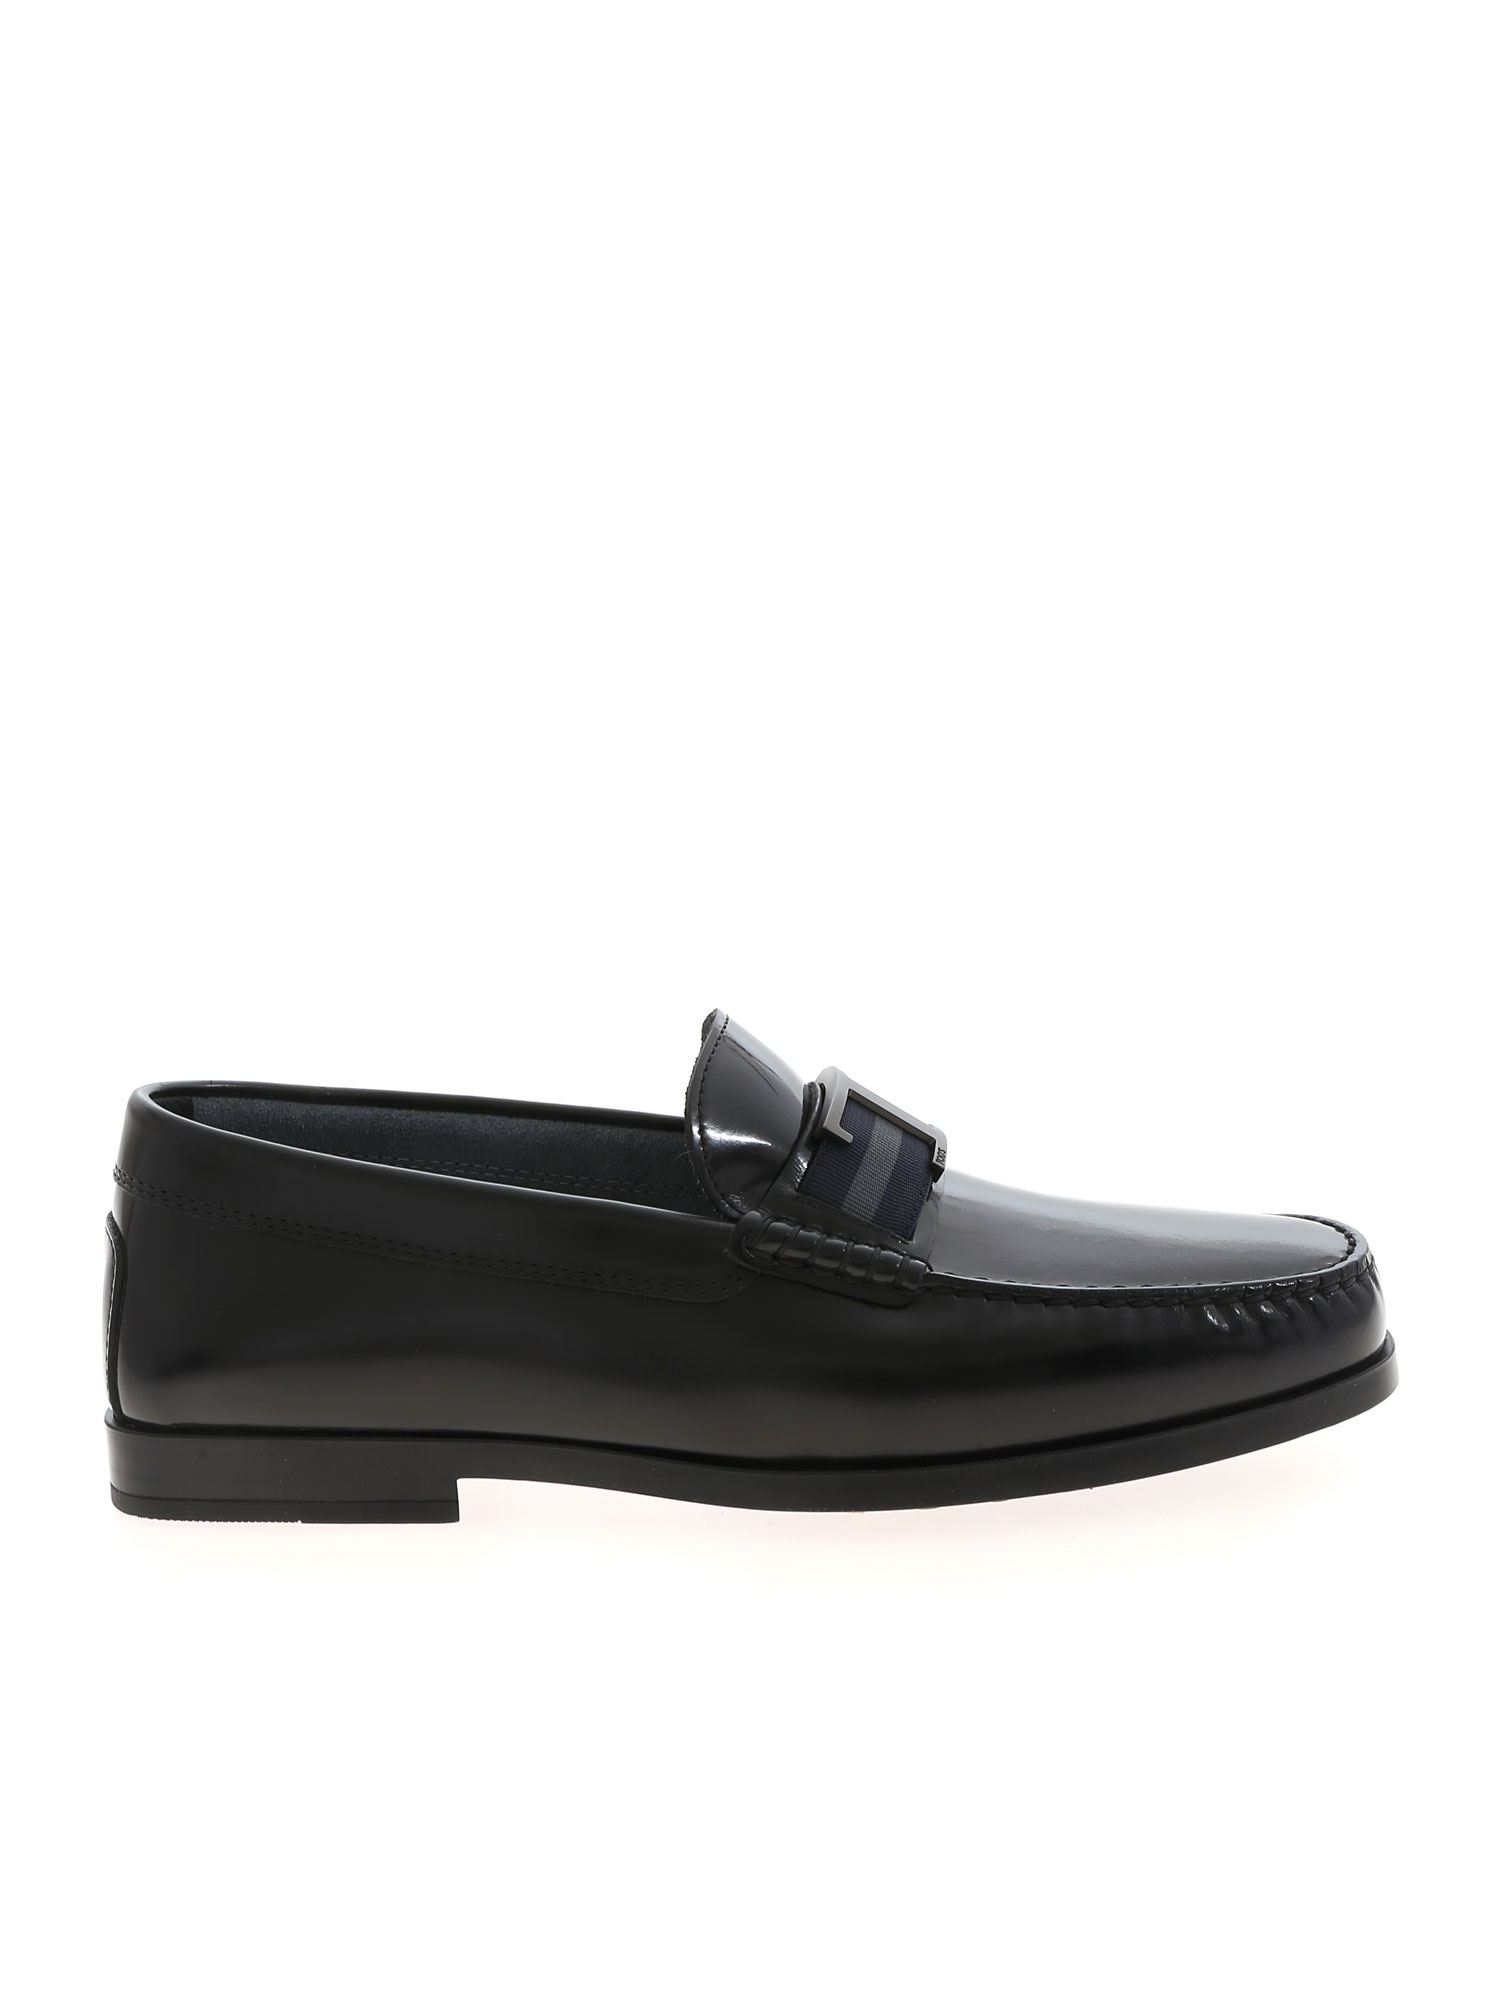 Tod's T LOGO LOAFERS IN BLACK